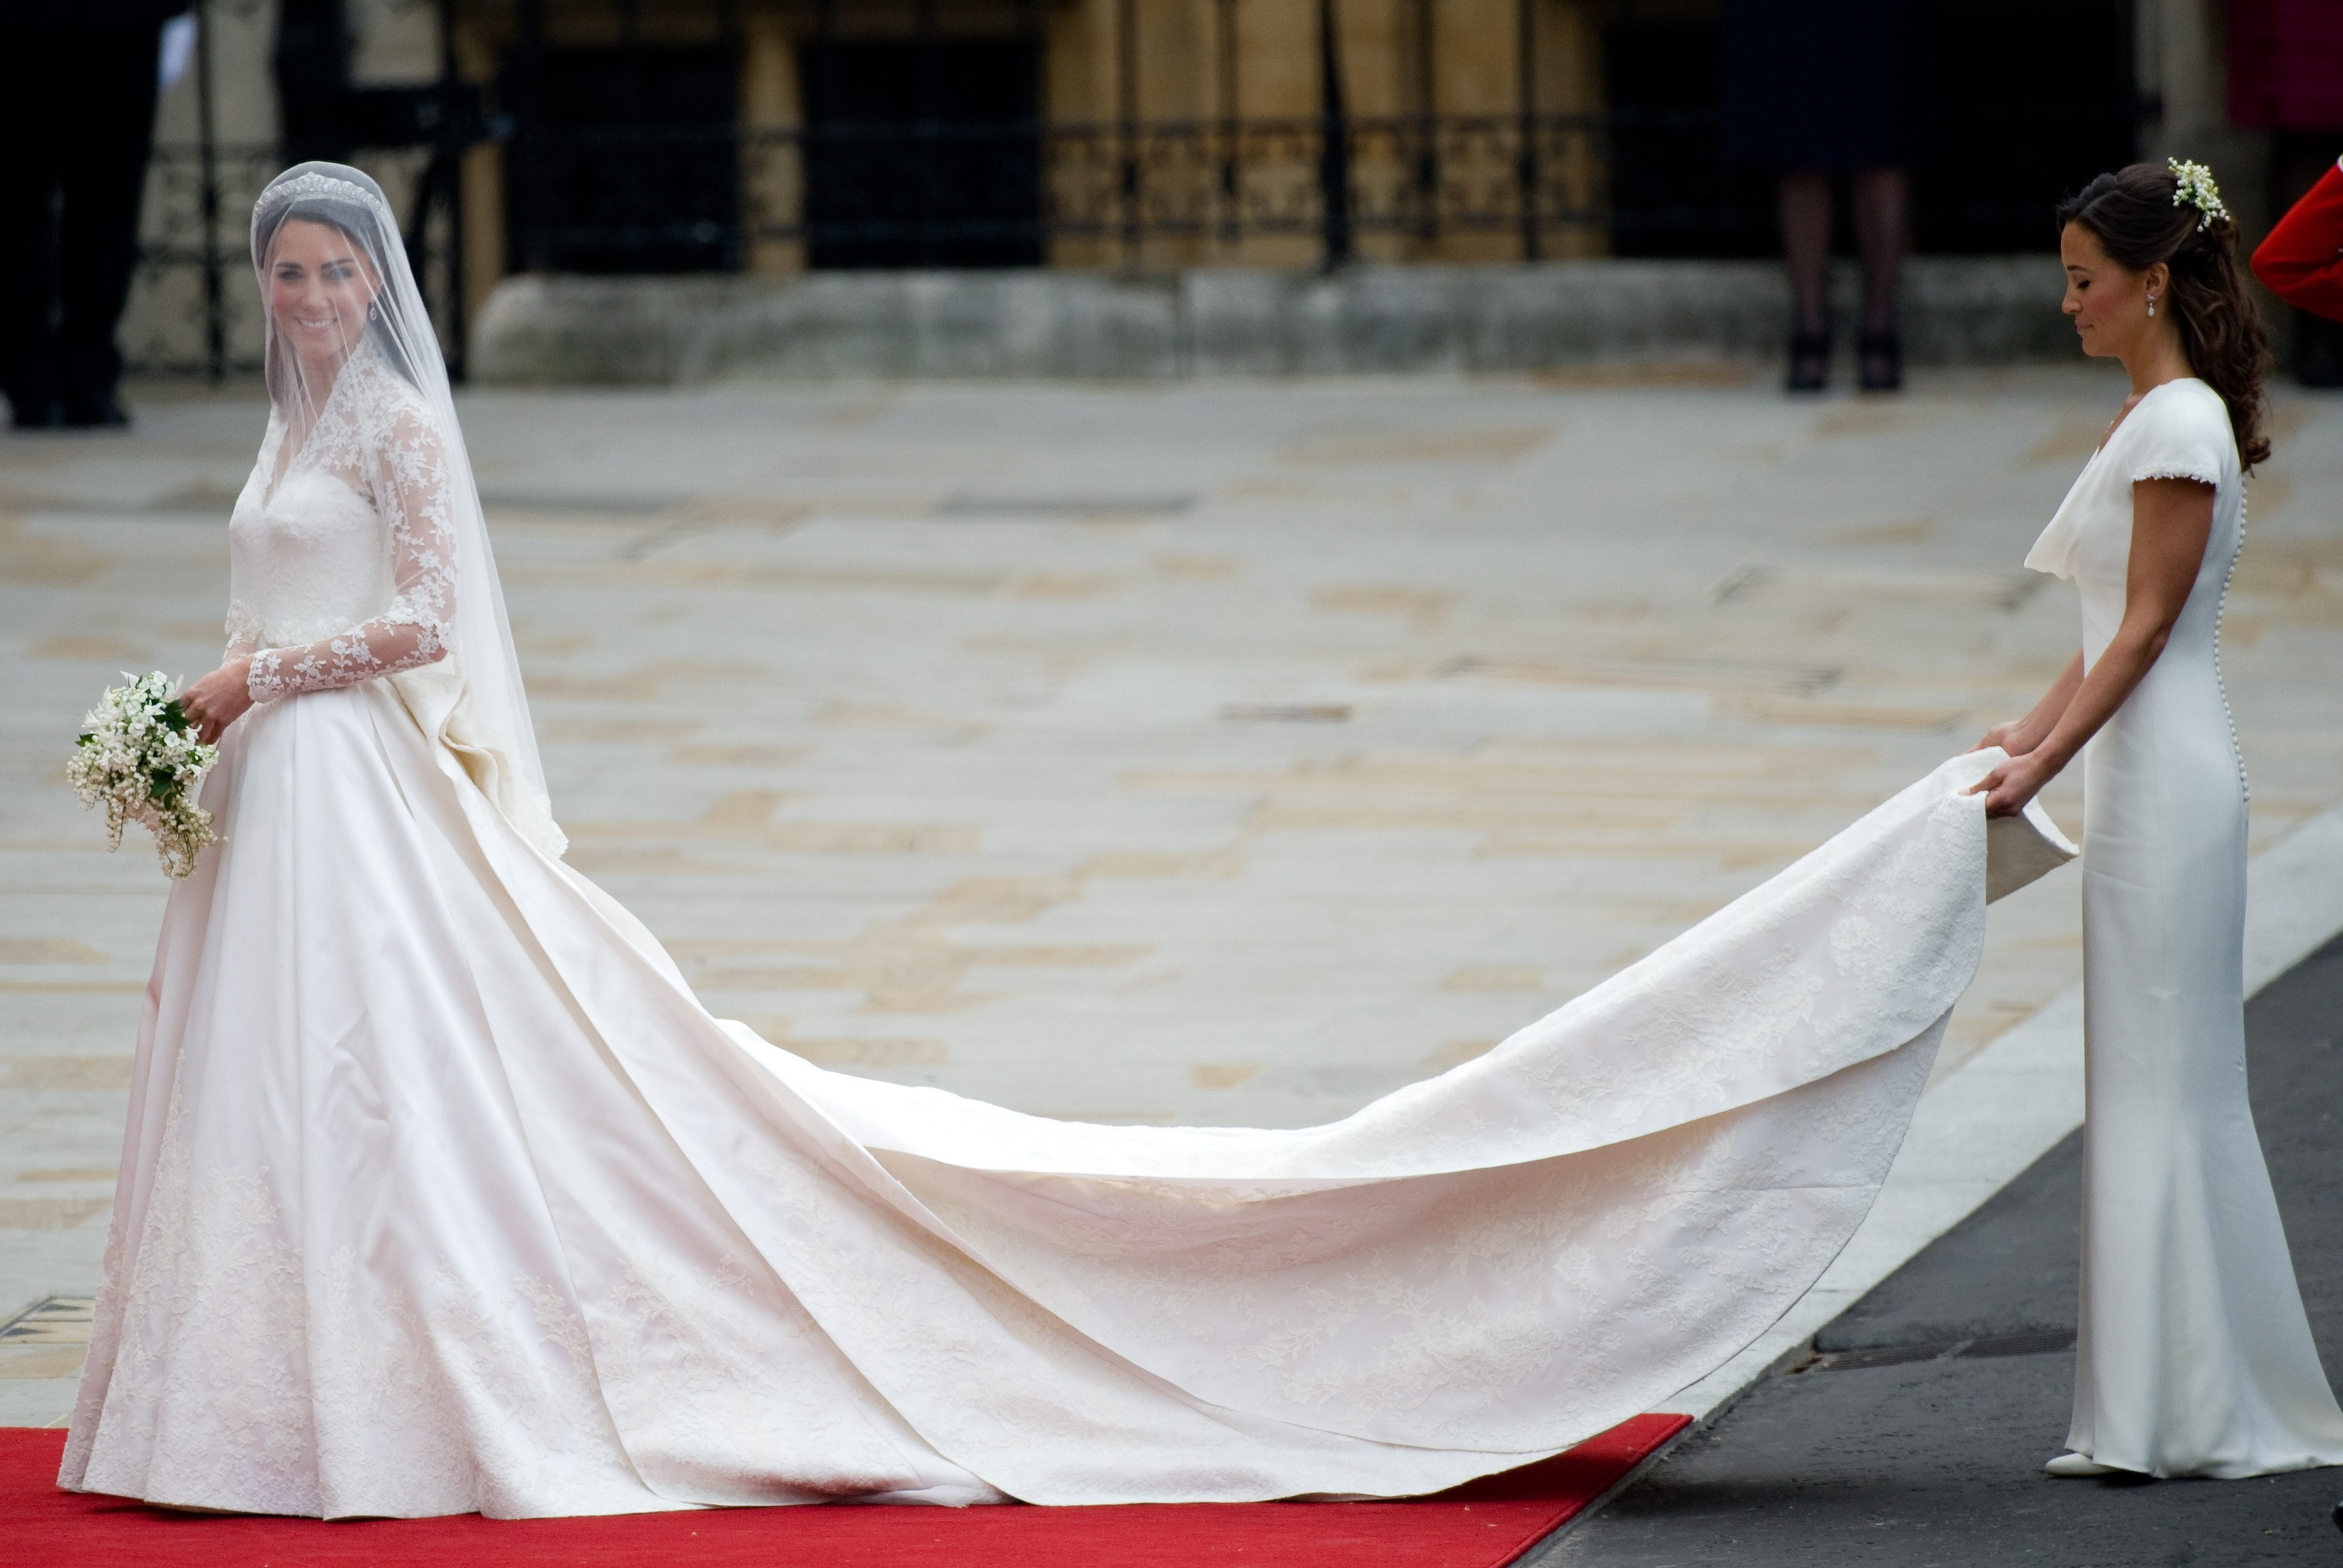 Kate Middleton e Pippa no casamento real  (Foto: Getty Images)